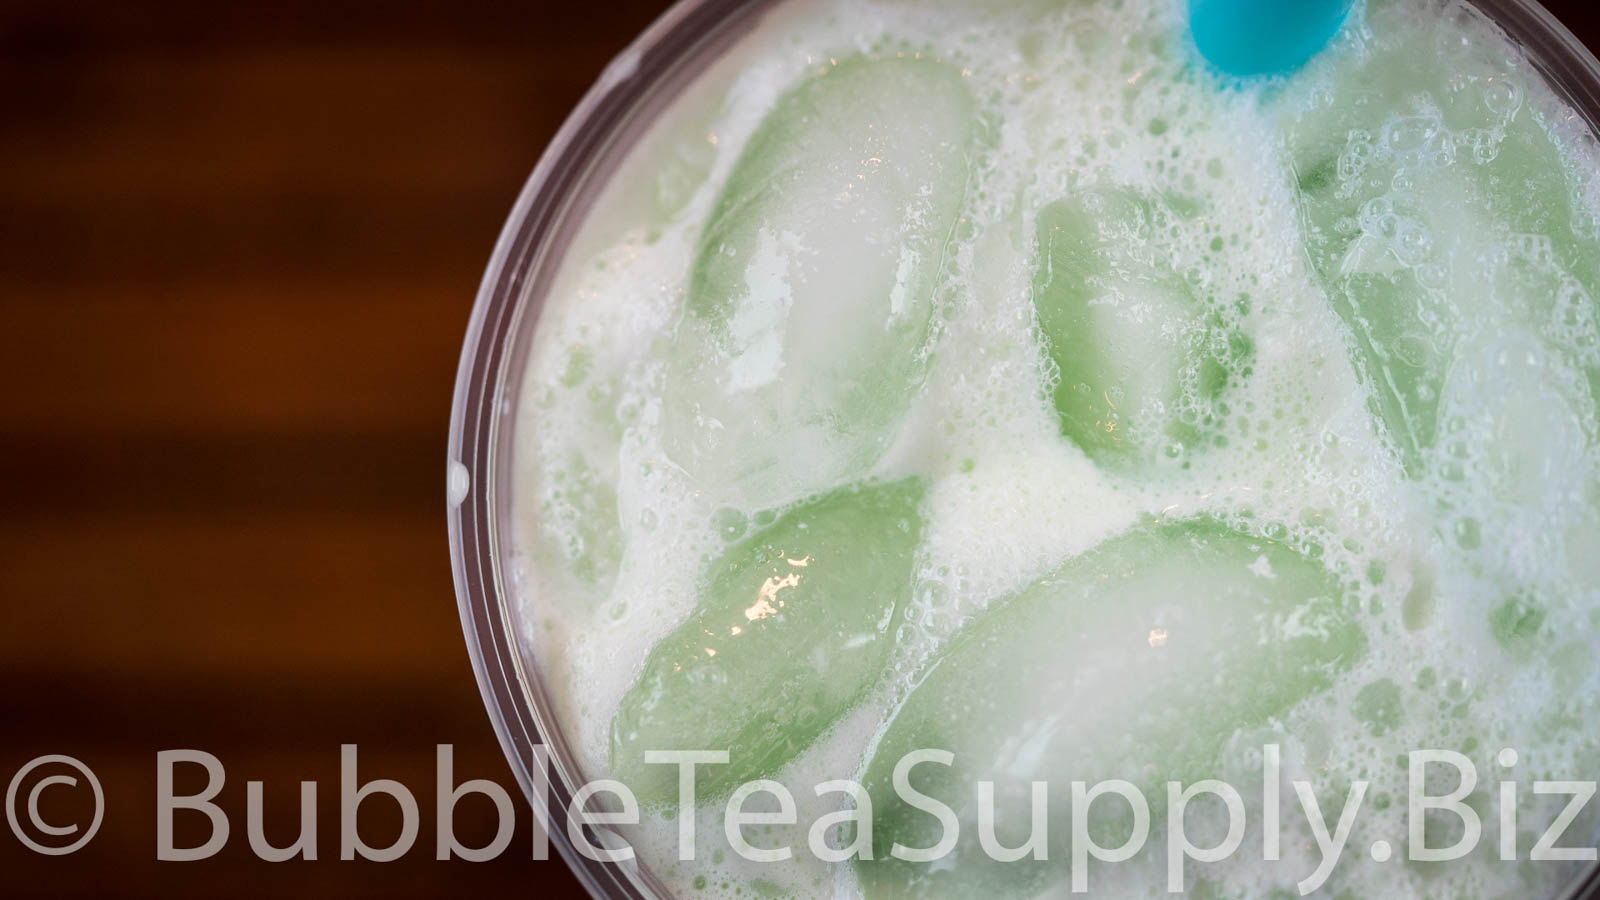 How to Make Honeydew Latte Bubble Tea